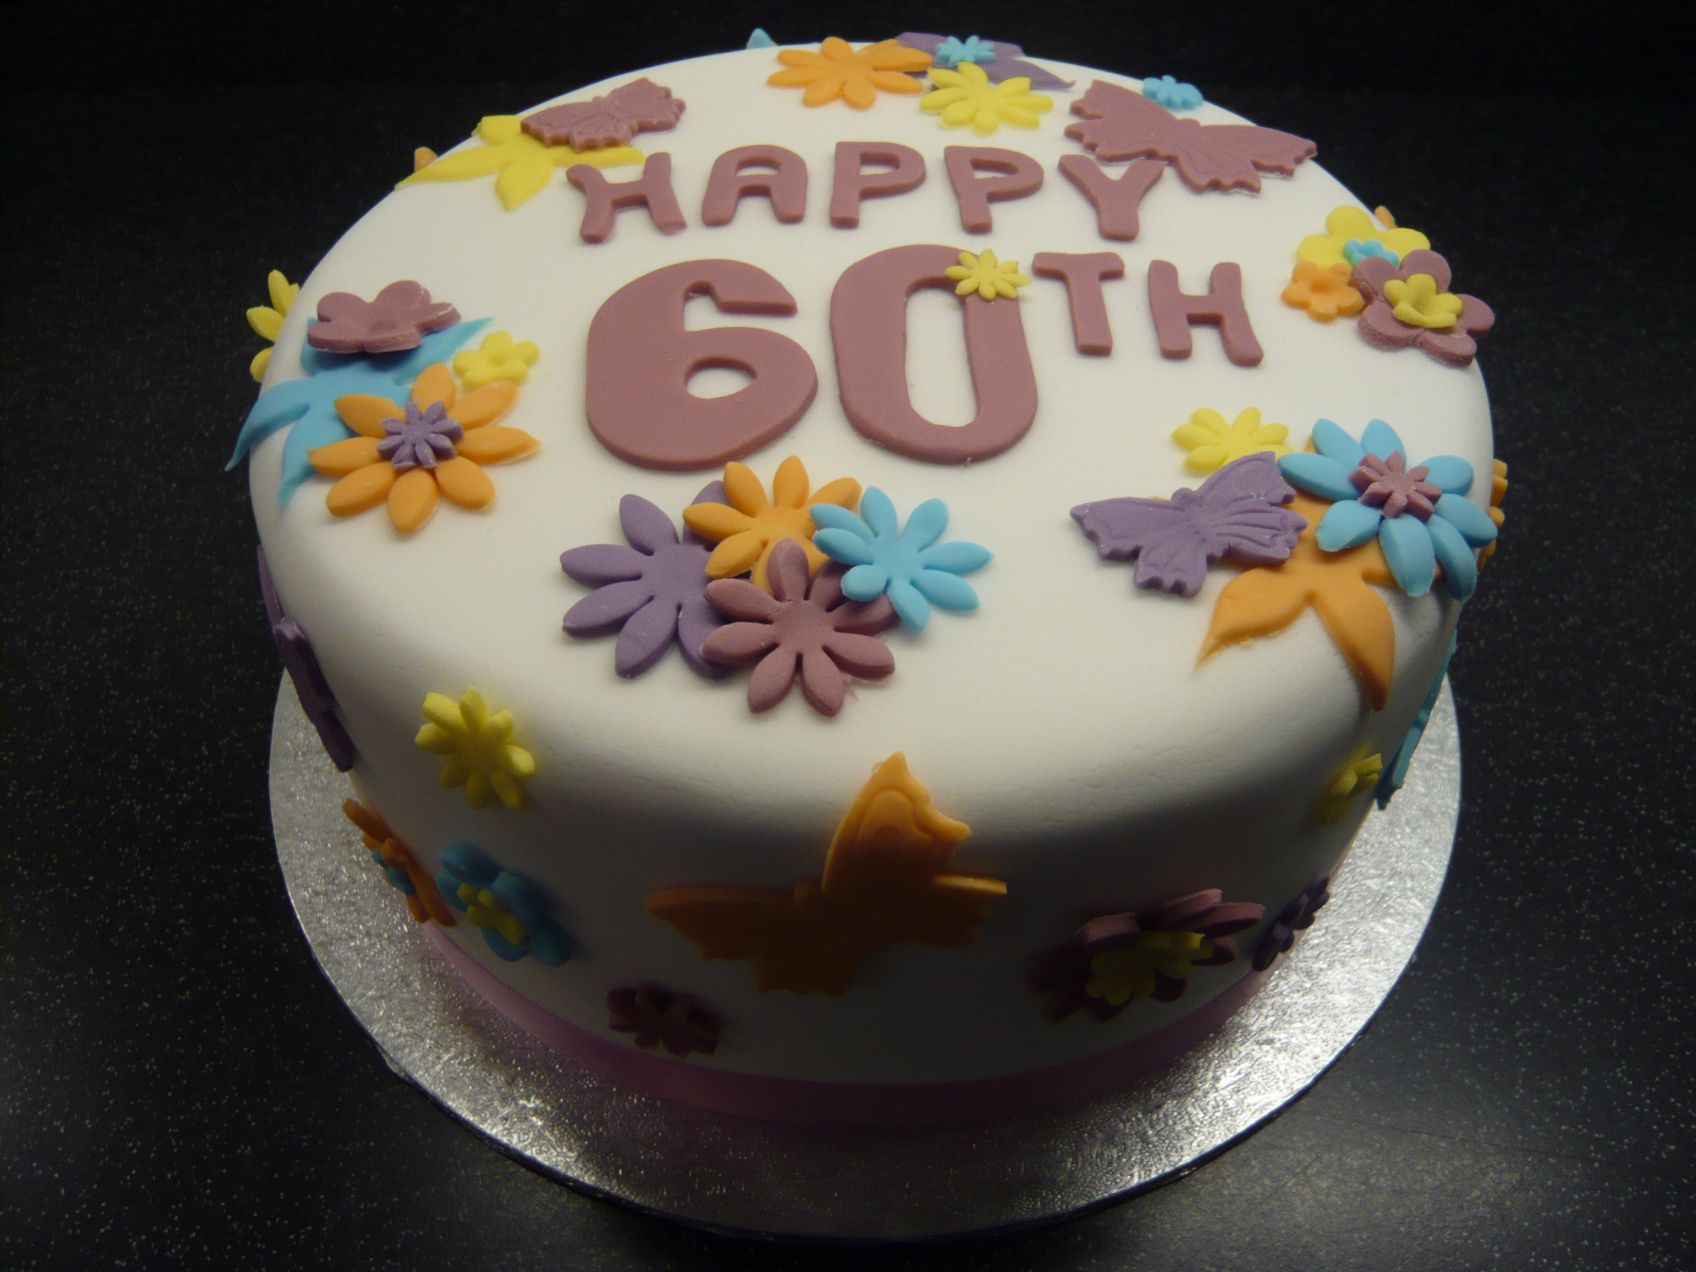 60th Birthday Cakes for Women Happy 60th Birthday Cake for